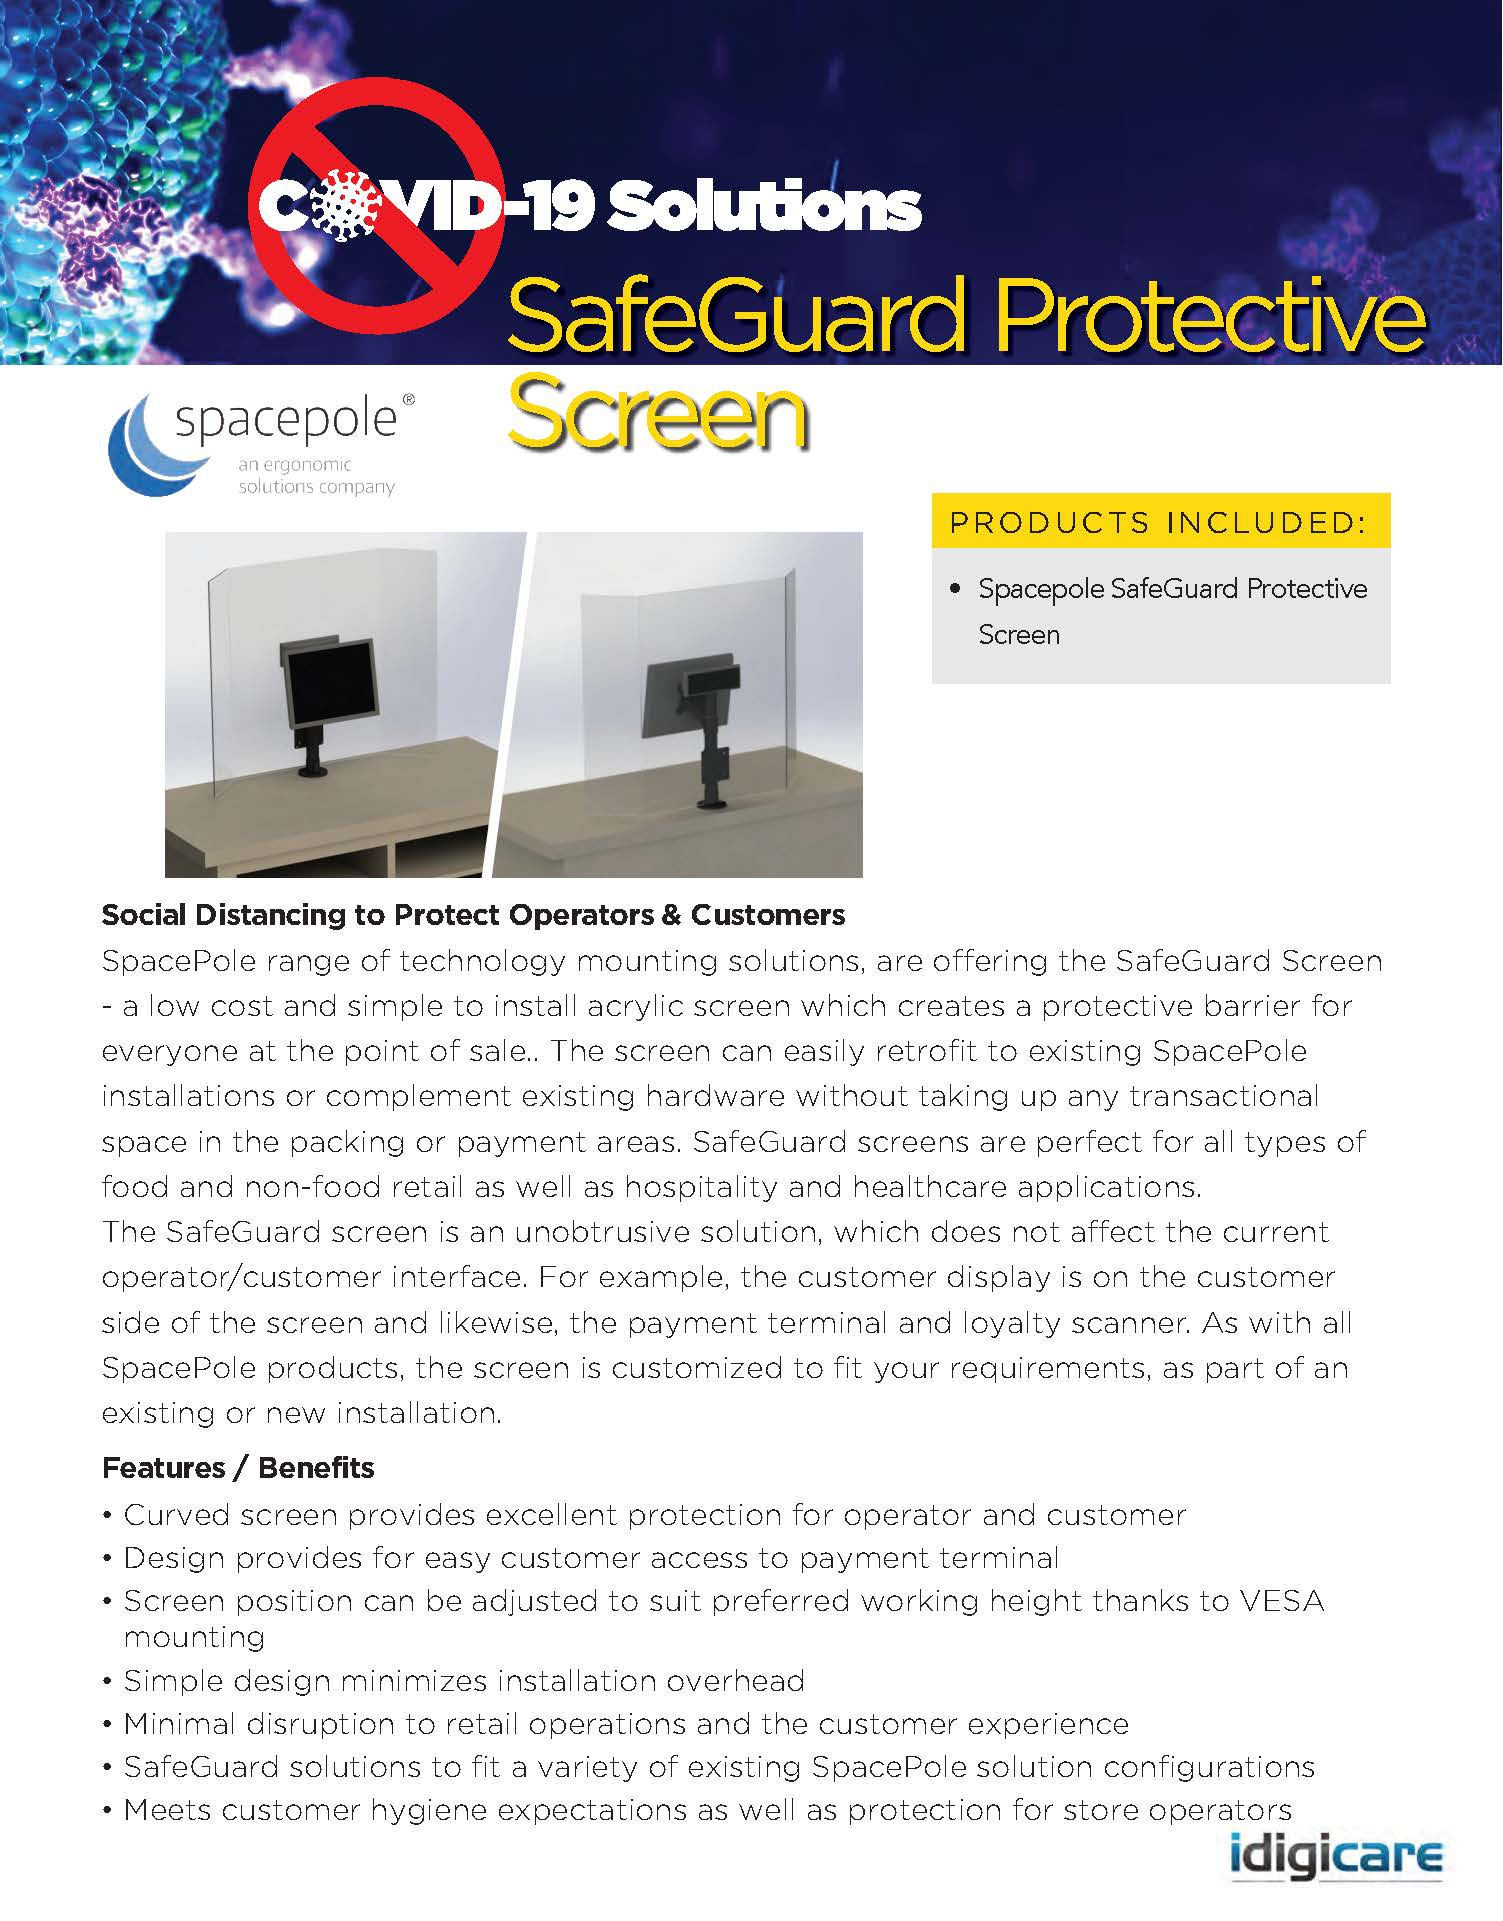 SafeGuard Protective Screen